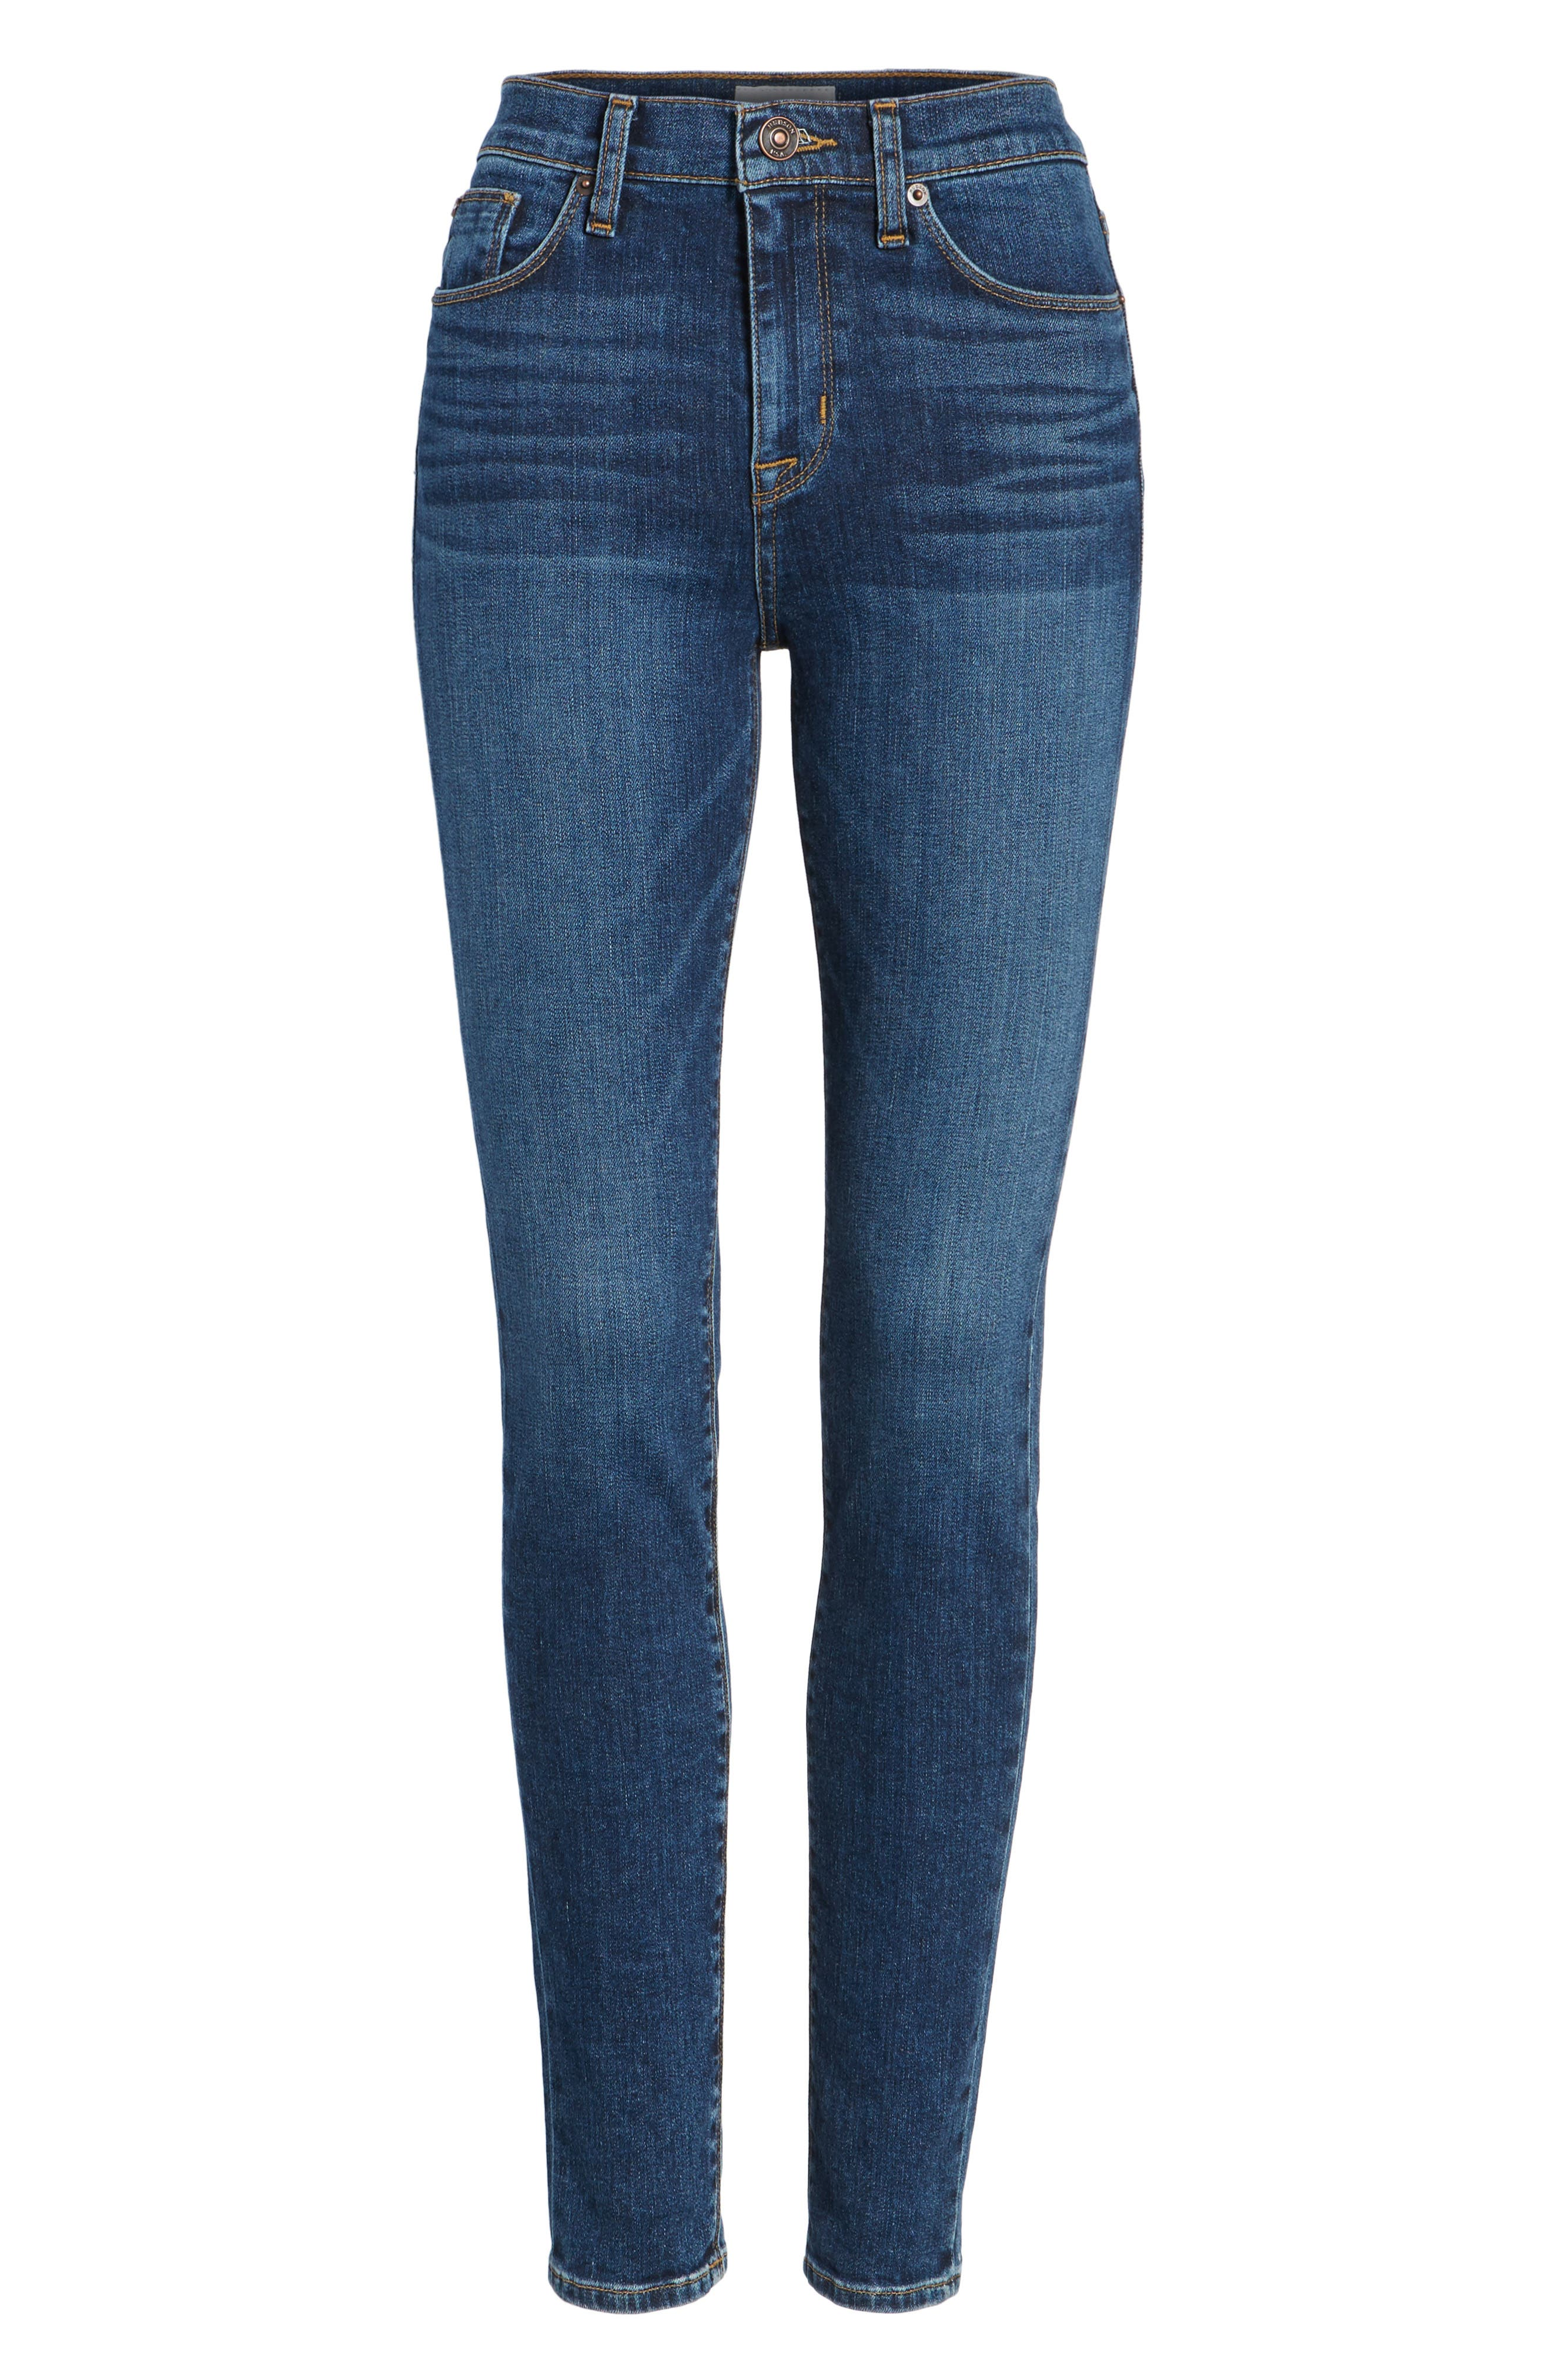 Barbara High Waist Super Skinny Jeans,                             Alternate thumbnail 7, color,                             Realism